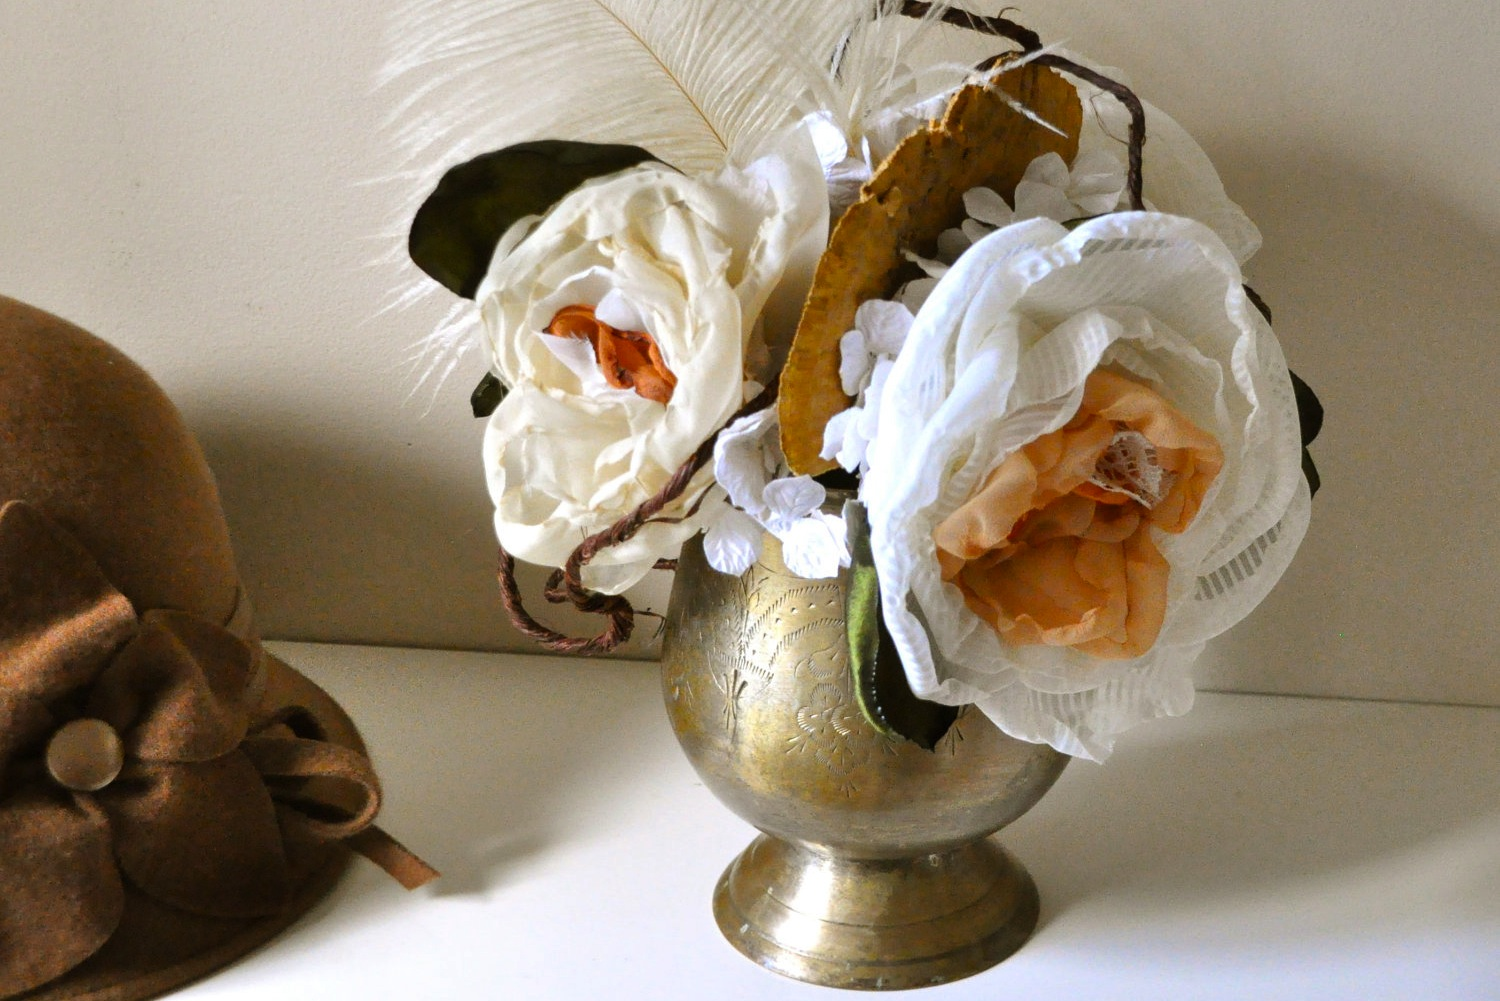 Fall-wedding-flowers-bouquets-and-centerpieces-brass-vase-fabric-flowers.original